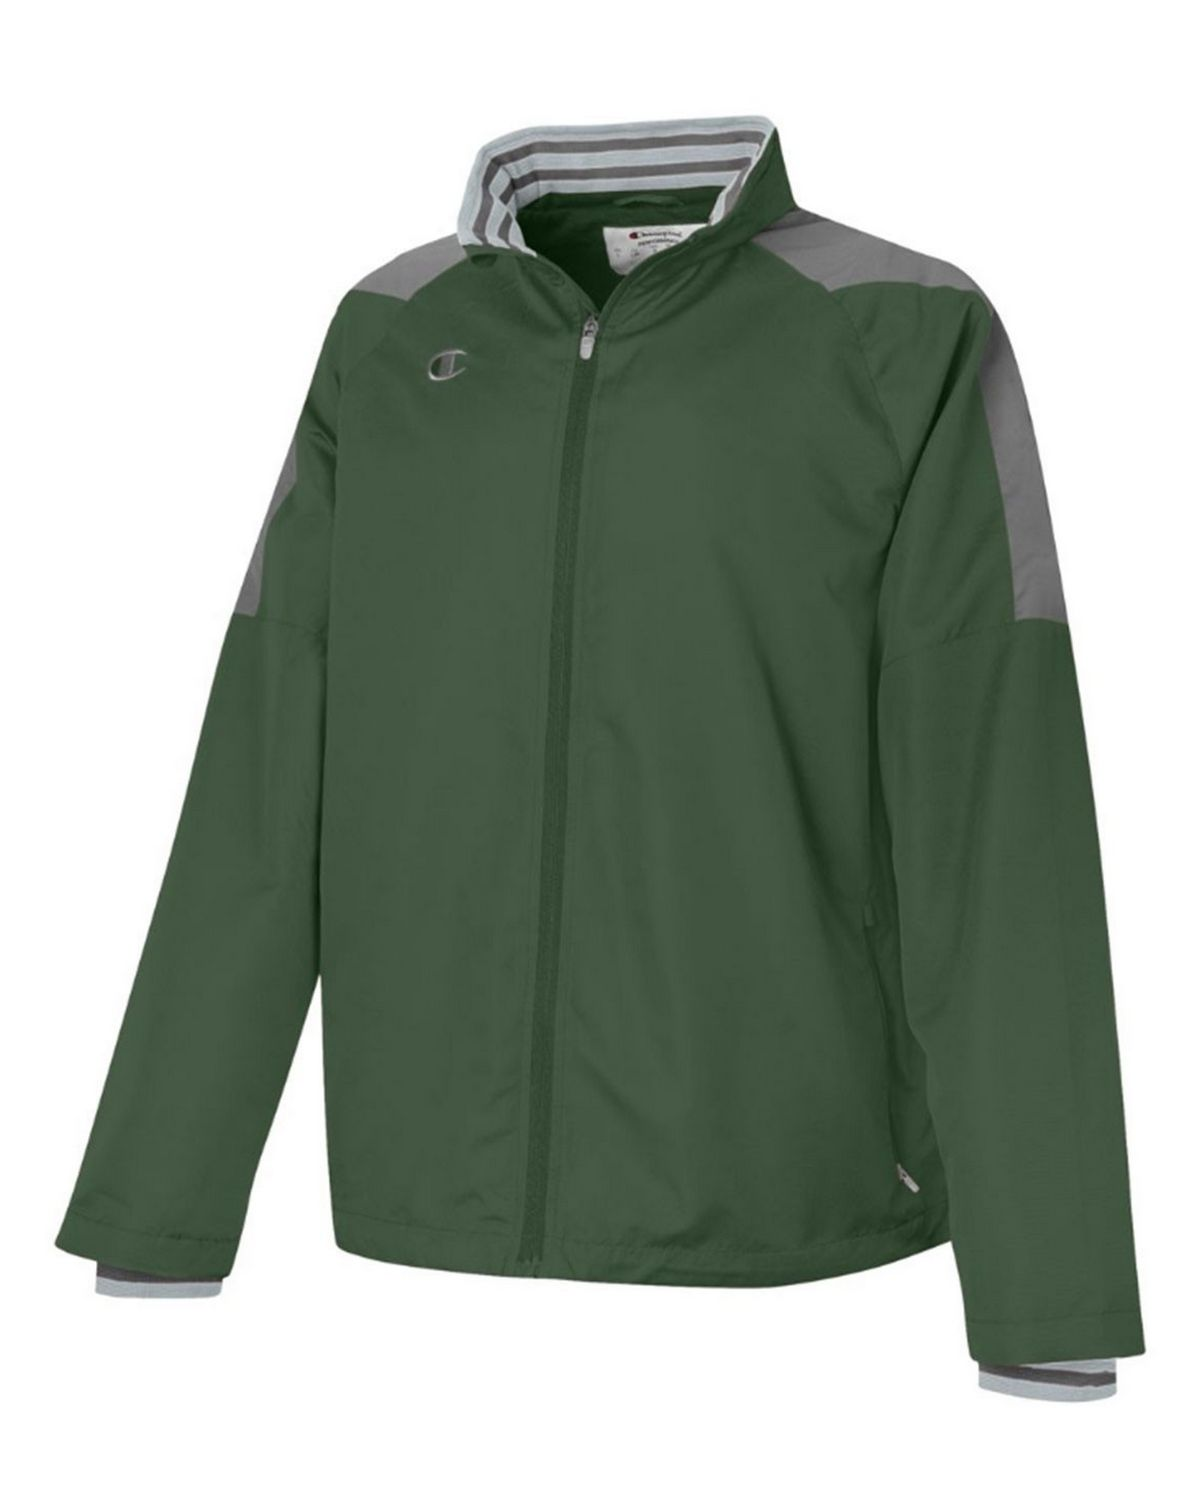 Champion V070 Mens Full Zip Jacket - Team Dark Green/Dark Platinum Gray - XL V070